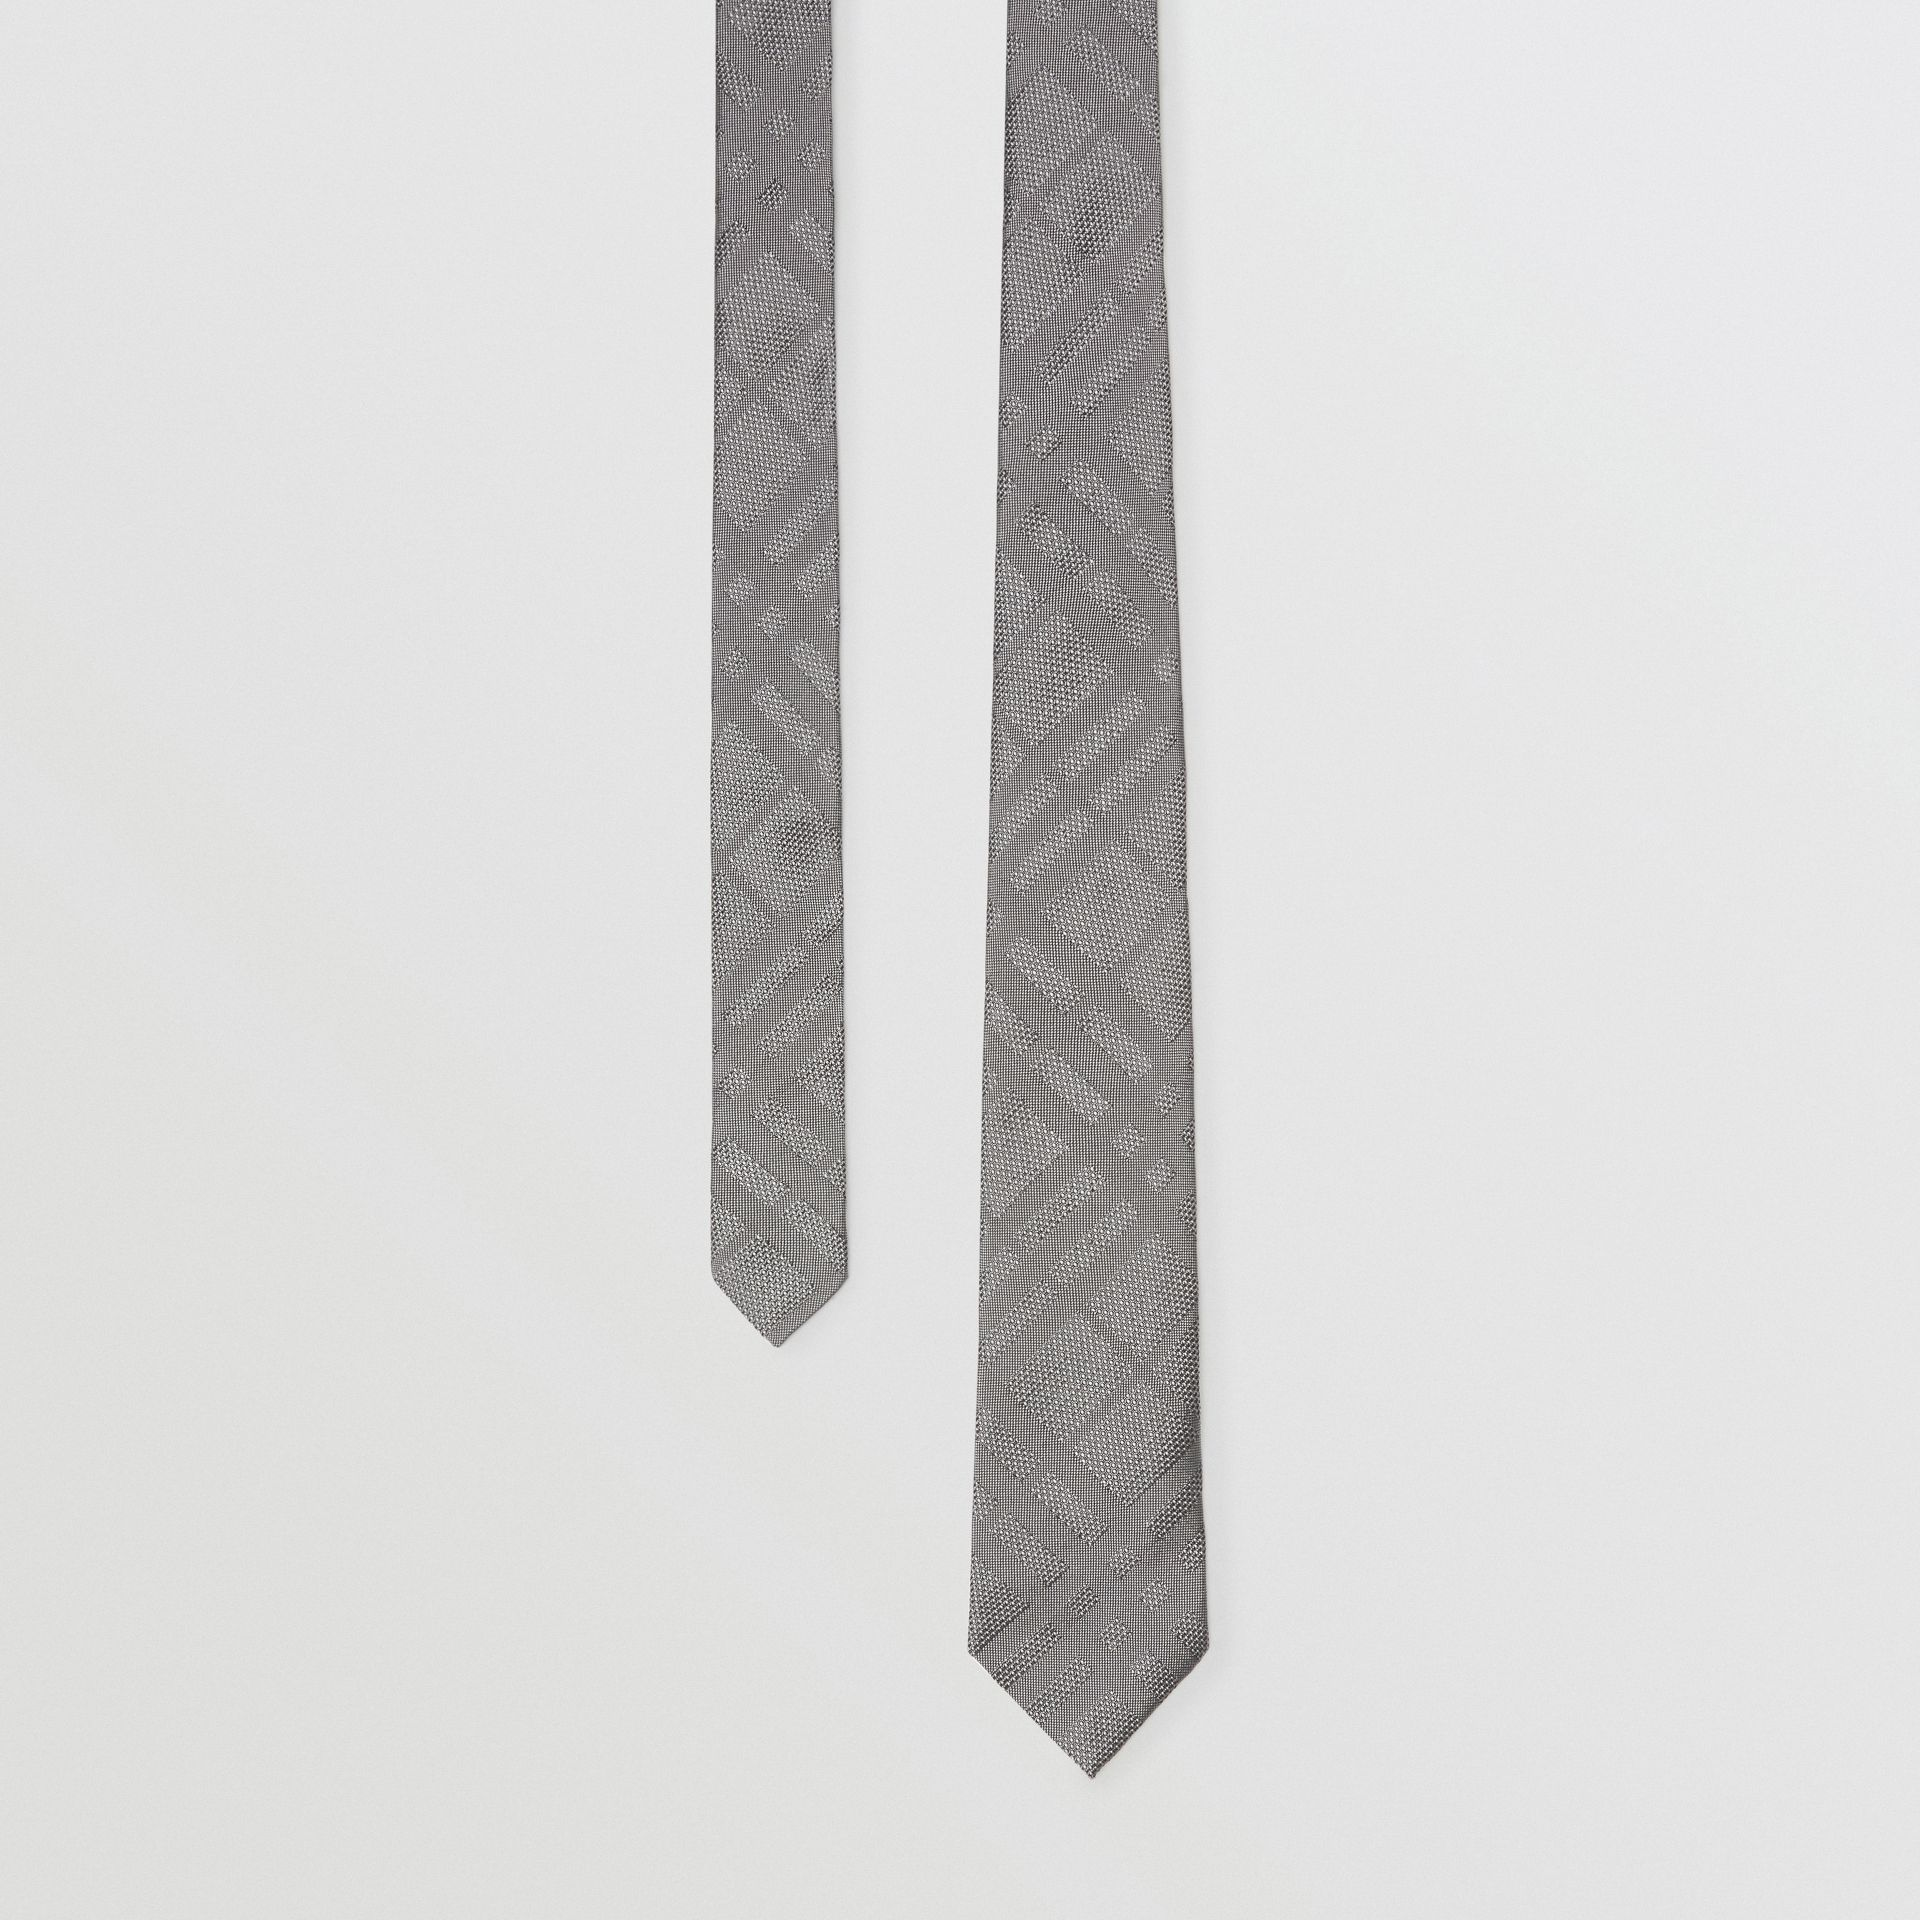 Classic Cut Check Silk Jacquard Tie in Charcoal - Men | Burberry Canada - gallery image 0